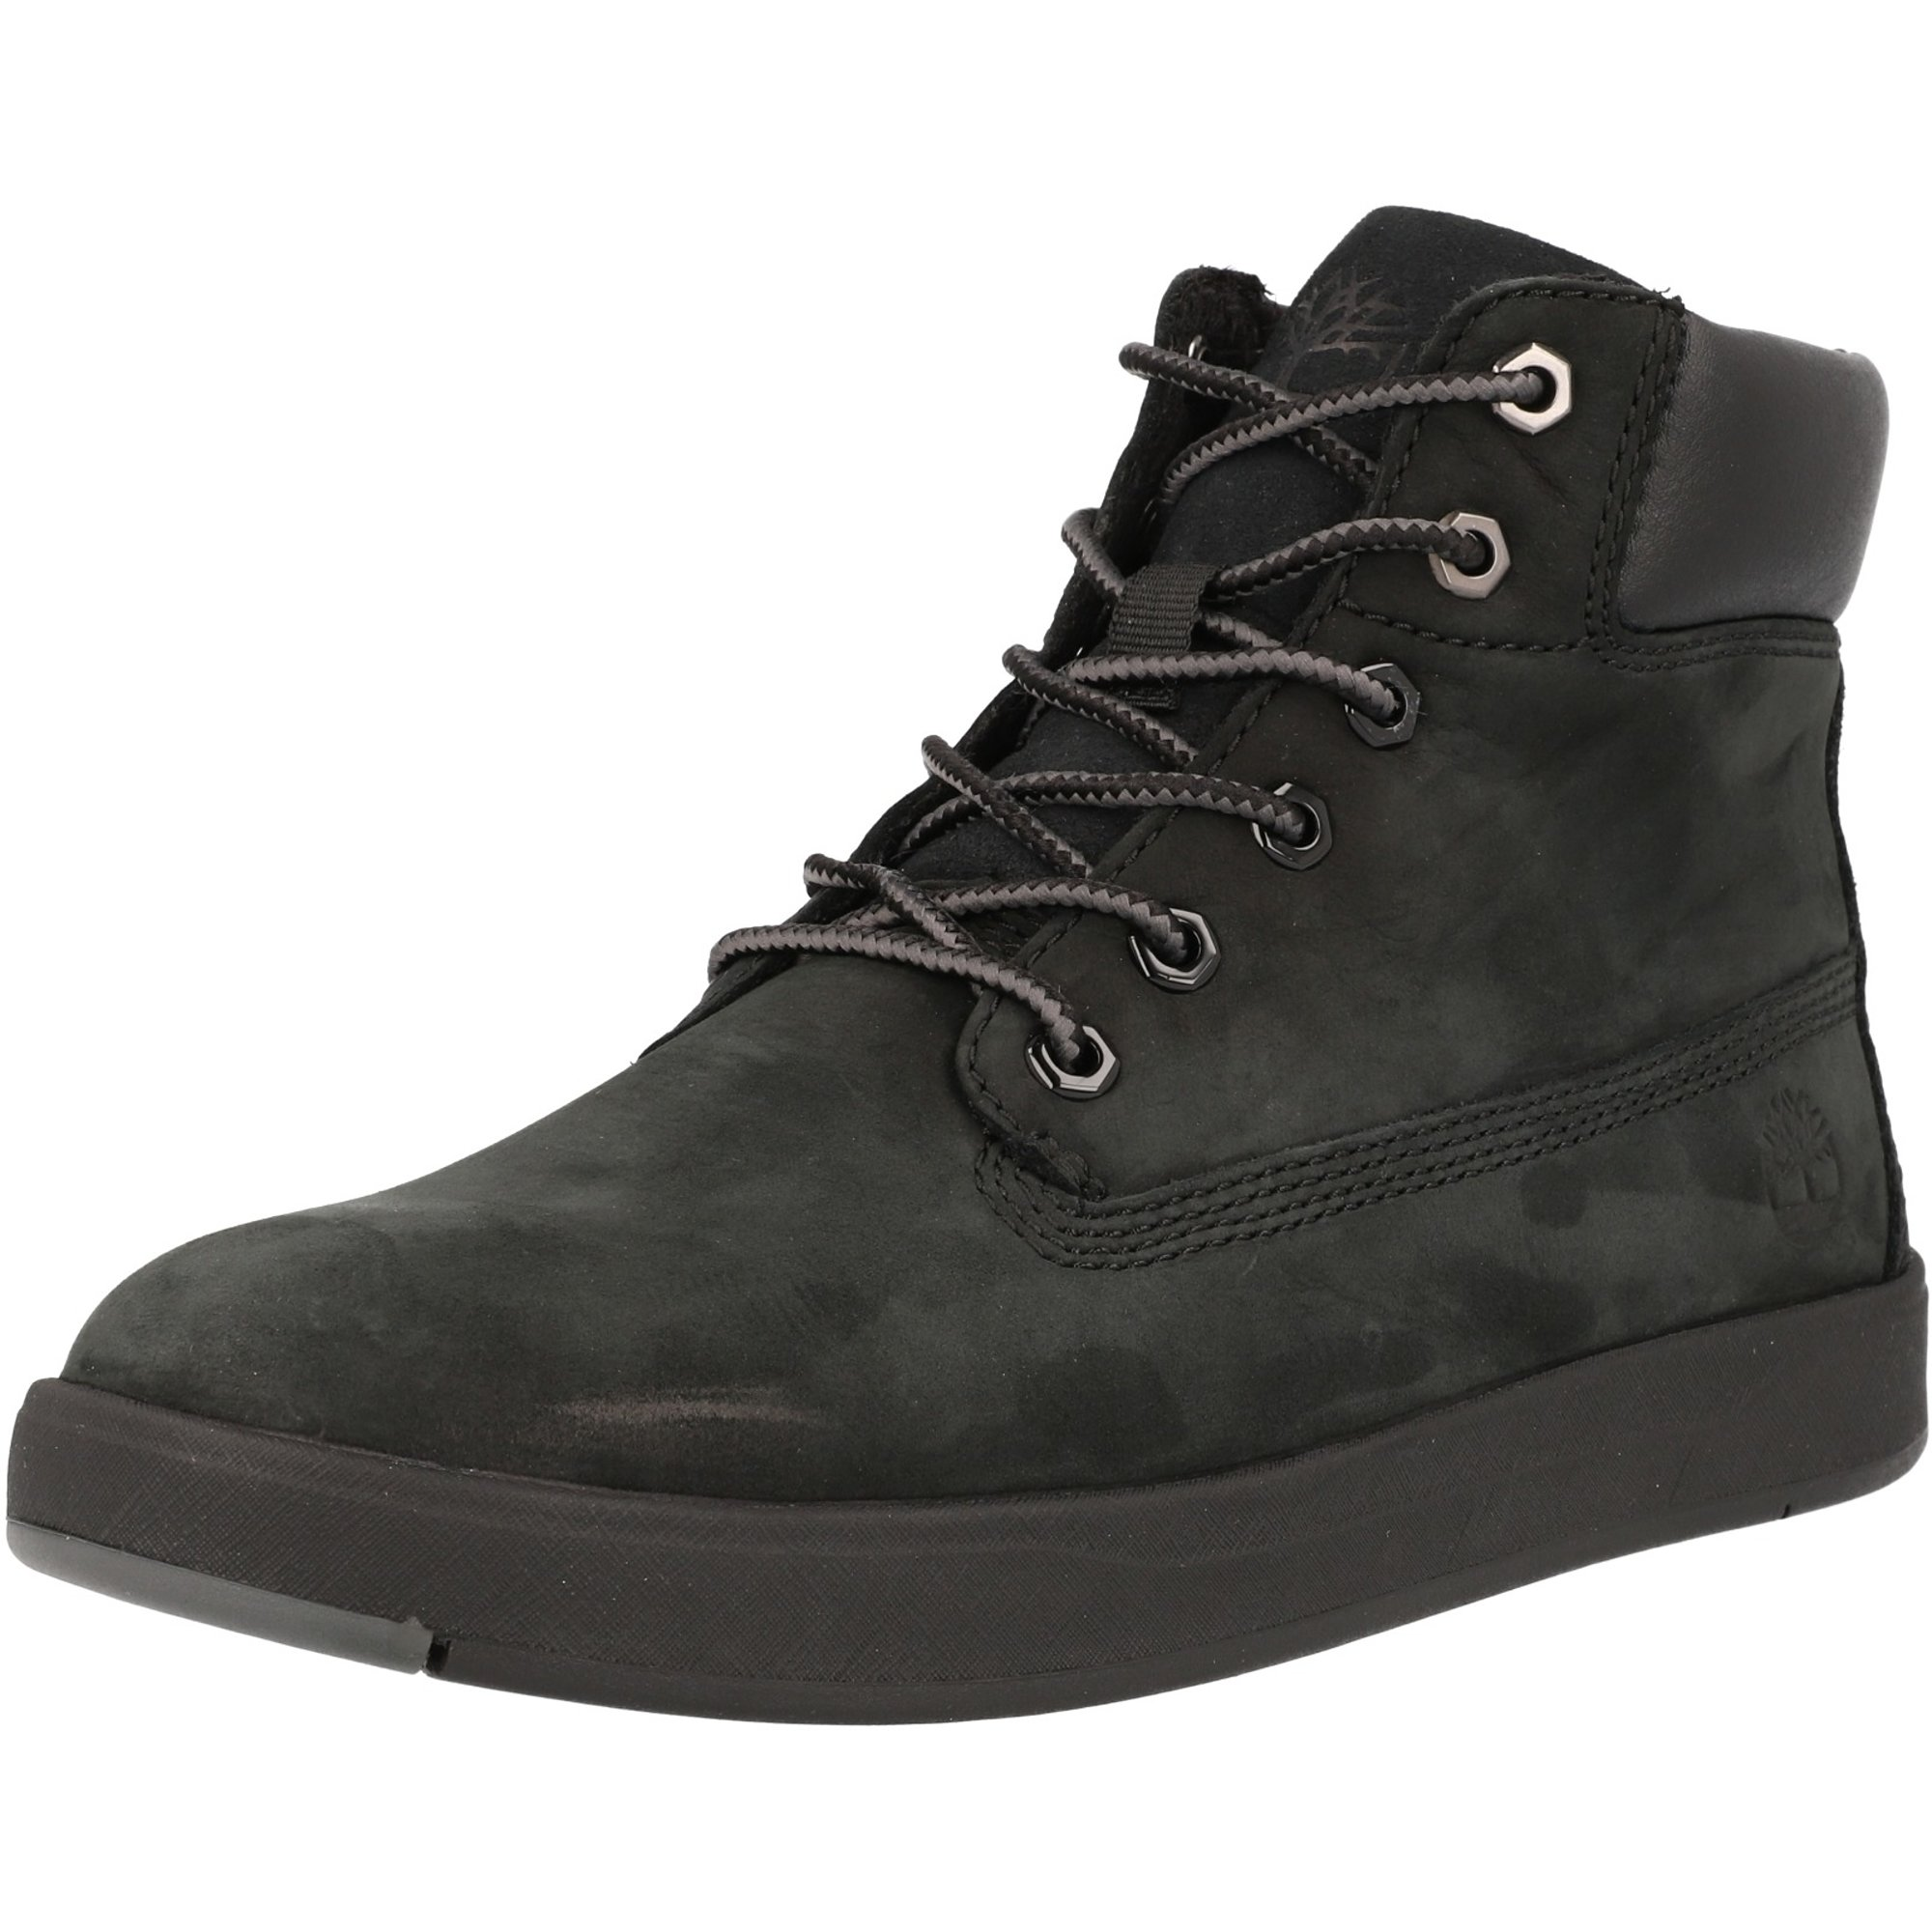 Timberland Davis Square 6 Inch Boot Black Nubuck Youth